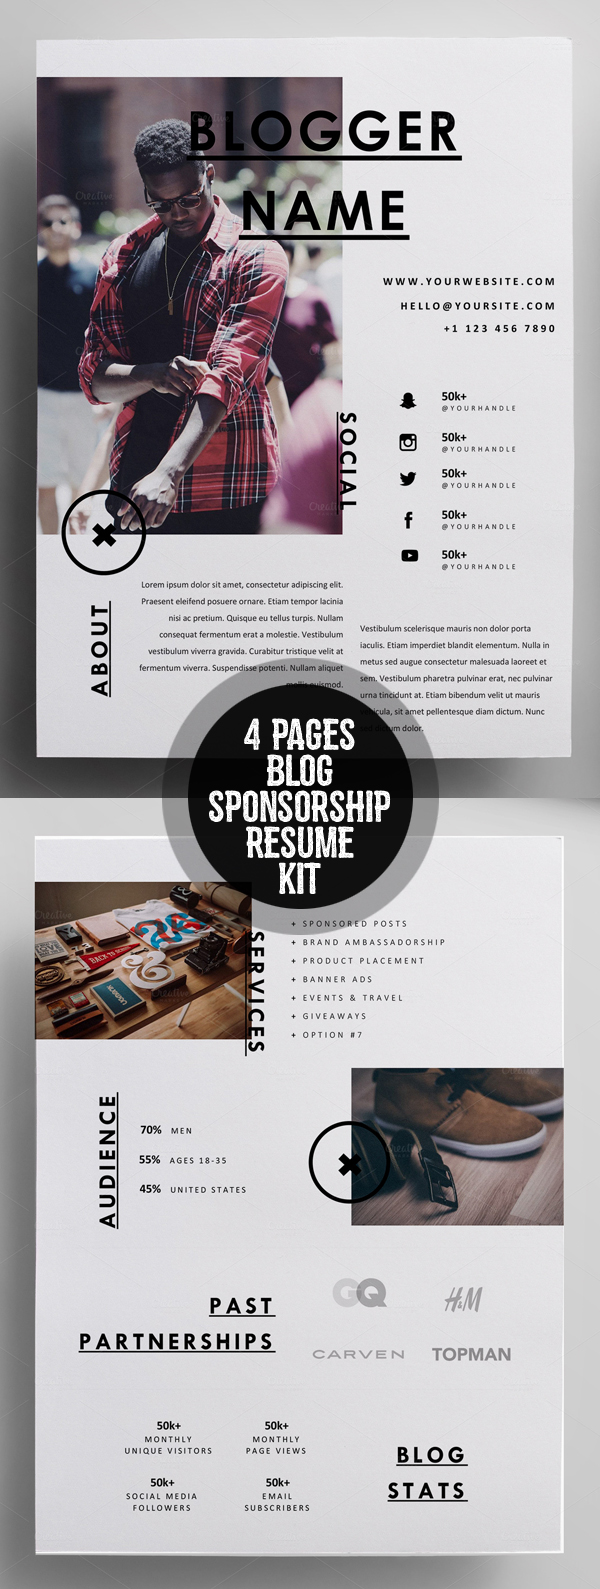 50 Best Resume Templates For 2018 - 47